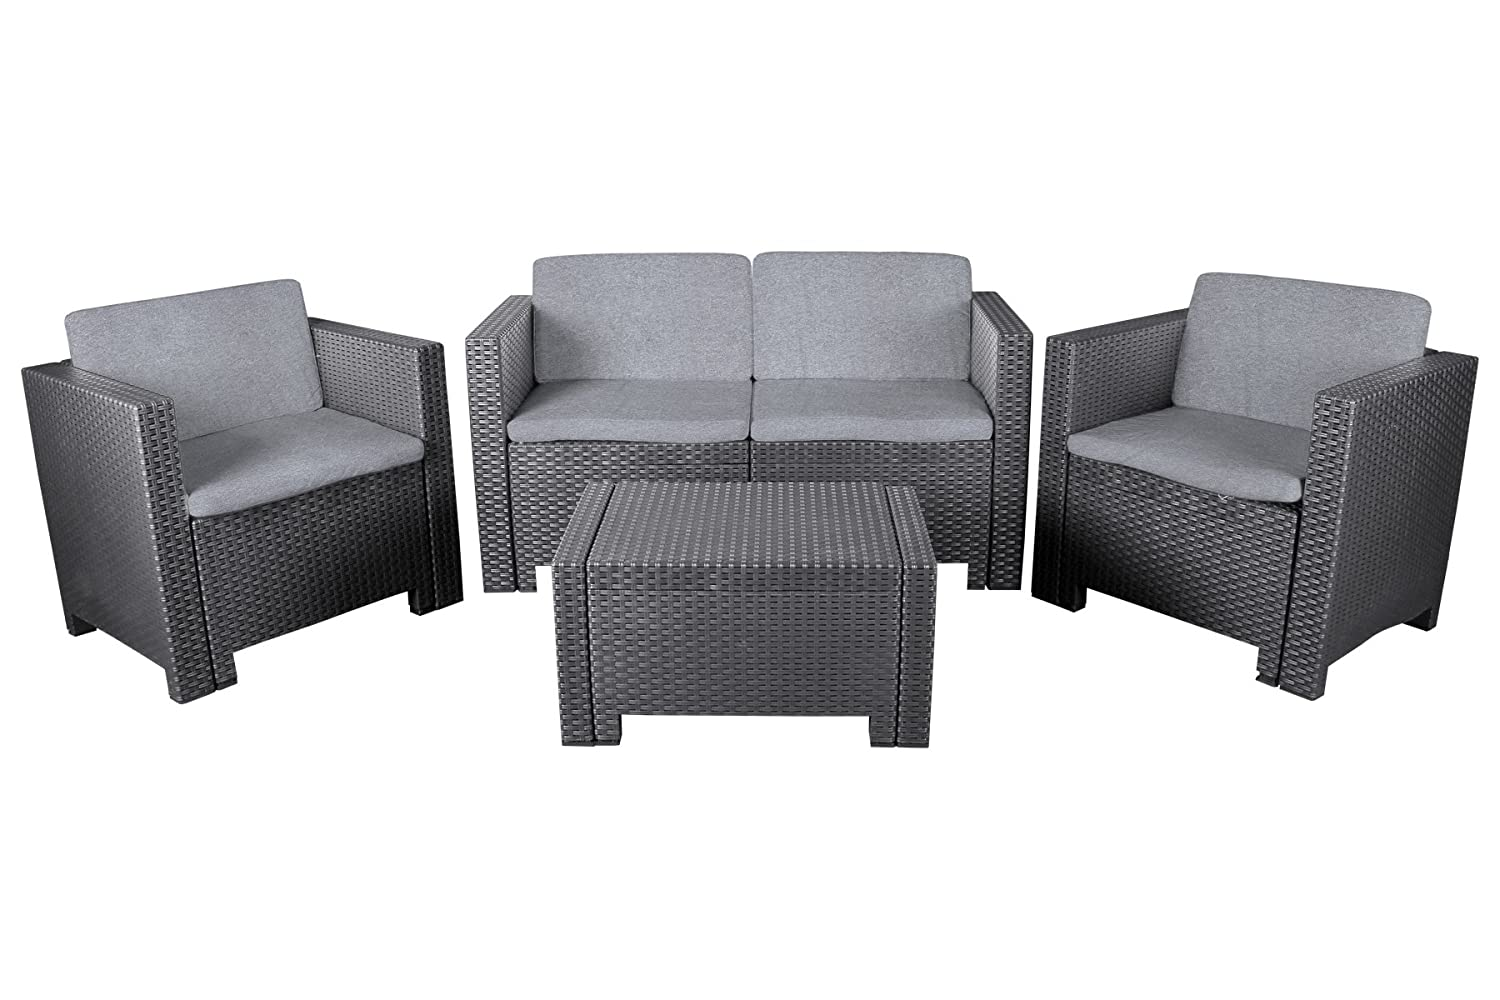 allibert lounge set cannes modische rattanoptik 4 tlg 2 sessel 1 sofa und 1 tisch grau. Black Bedroom Furniture Sets. Home Design Ideas